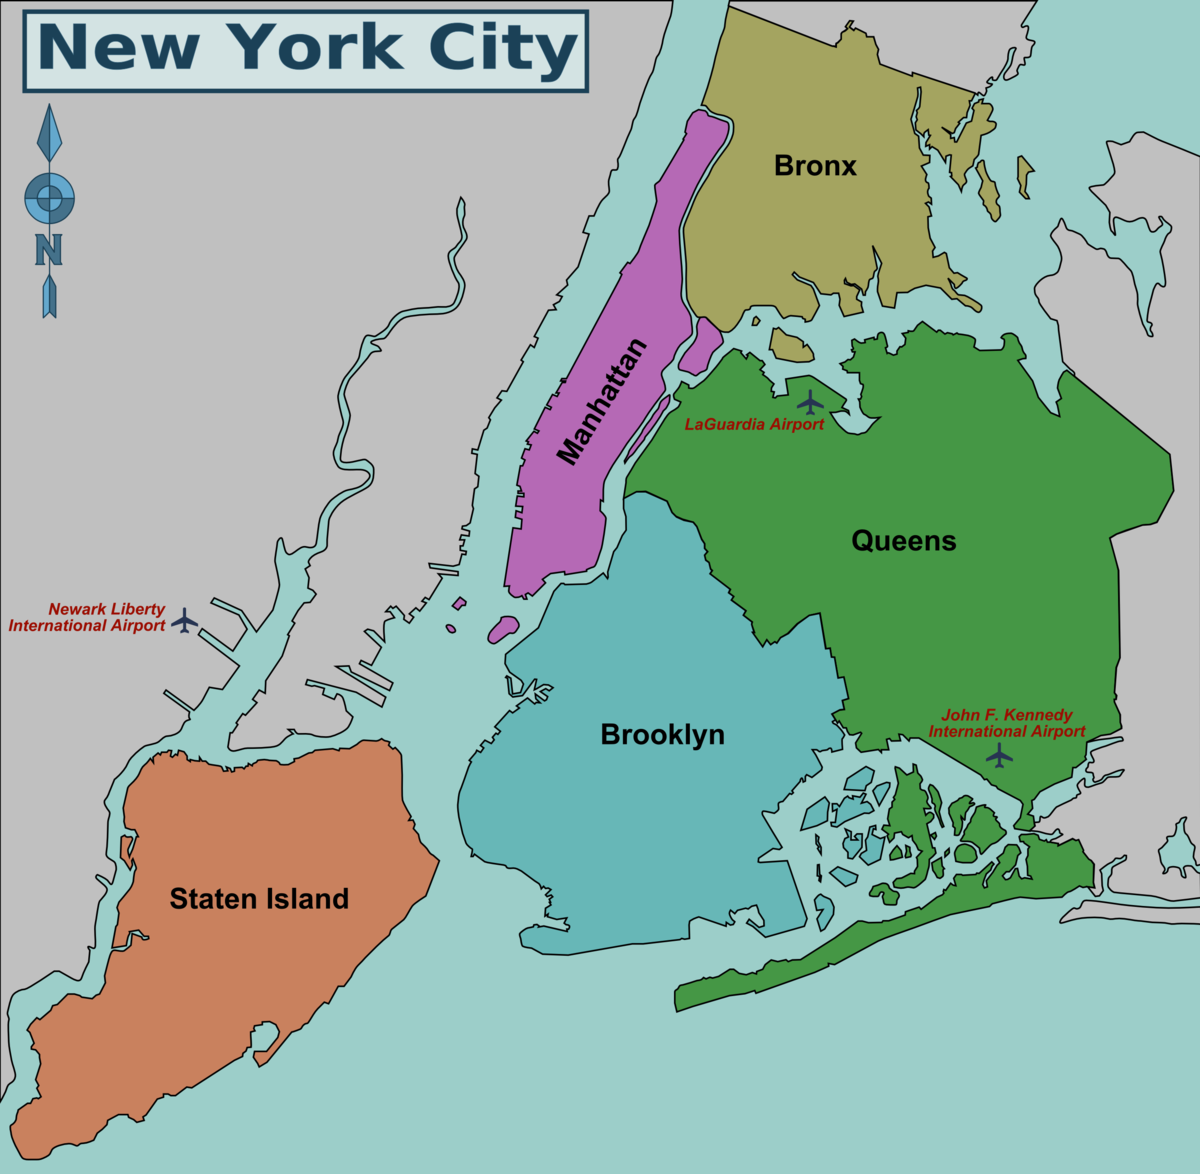 New york city travel guide at wikivoyage gumiabroncs Choice Image